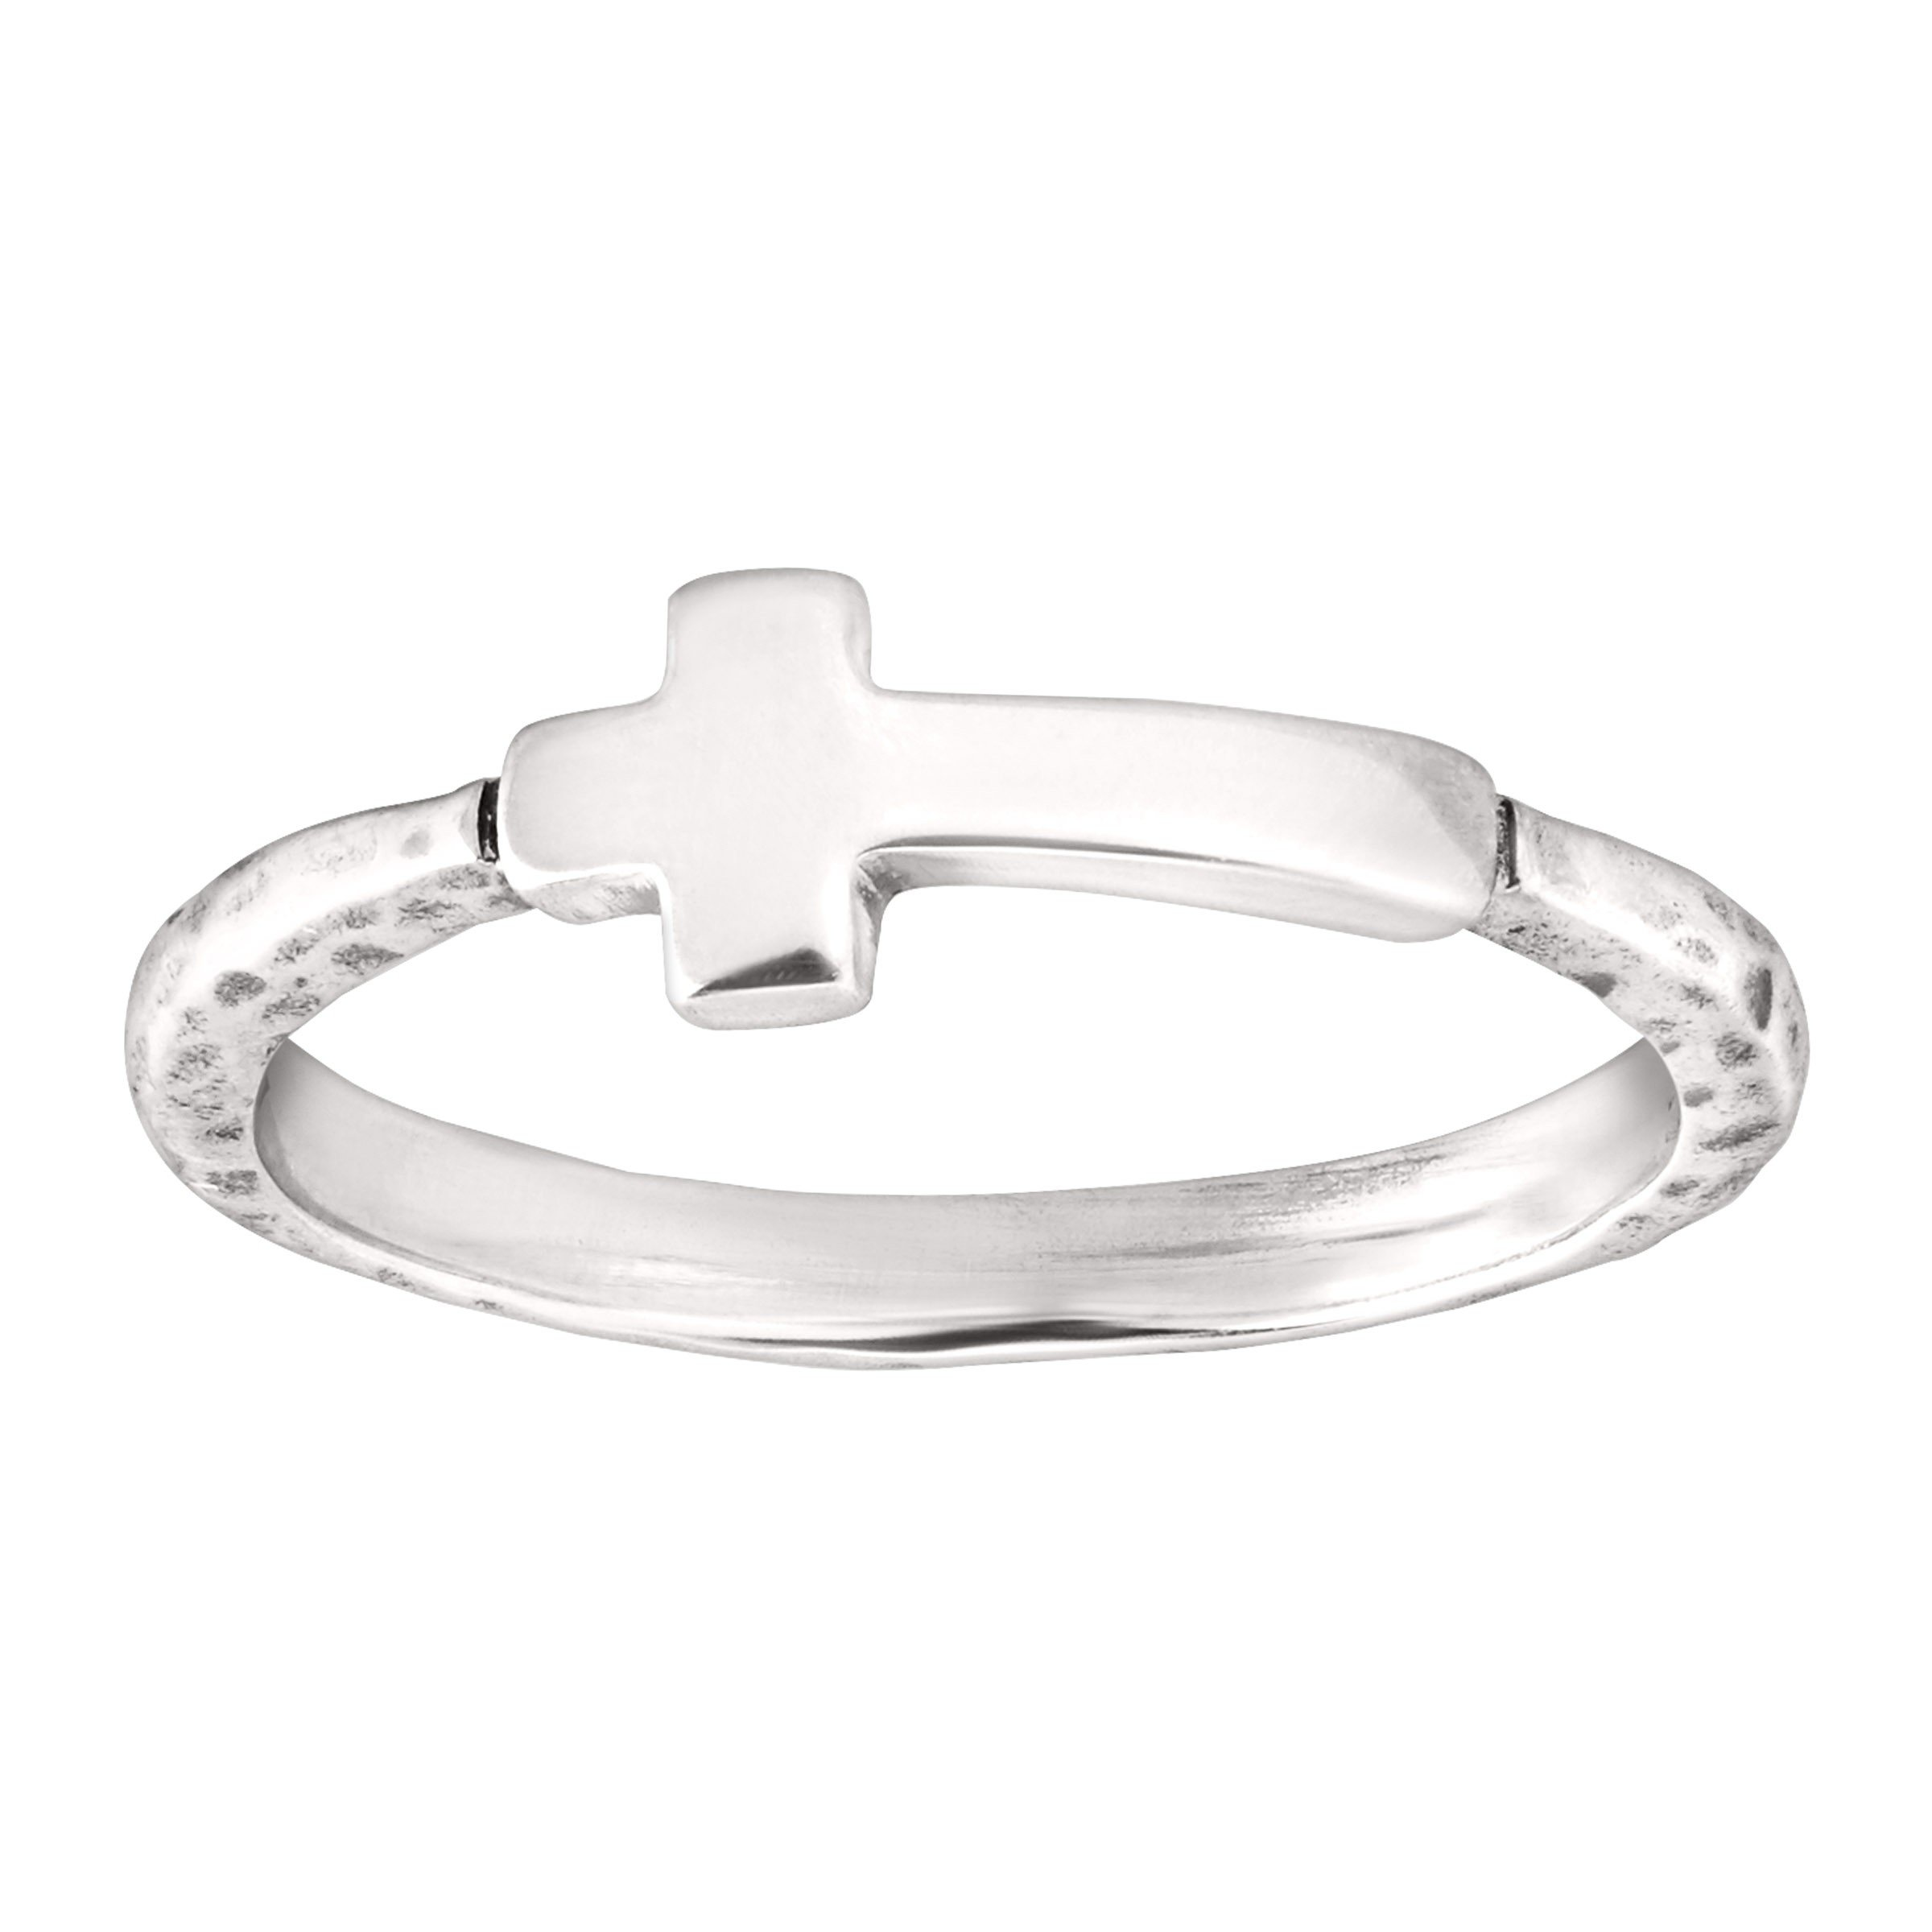 Silpada 'Simplex Cross' Sterling Silver Ring, Size 8